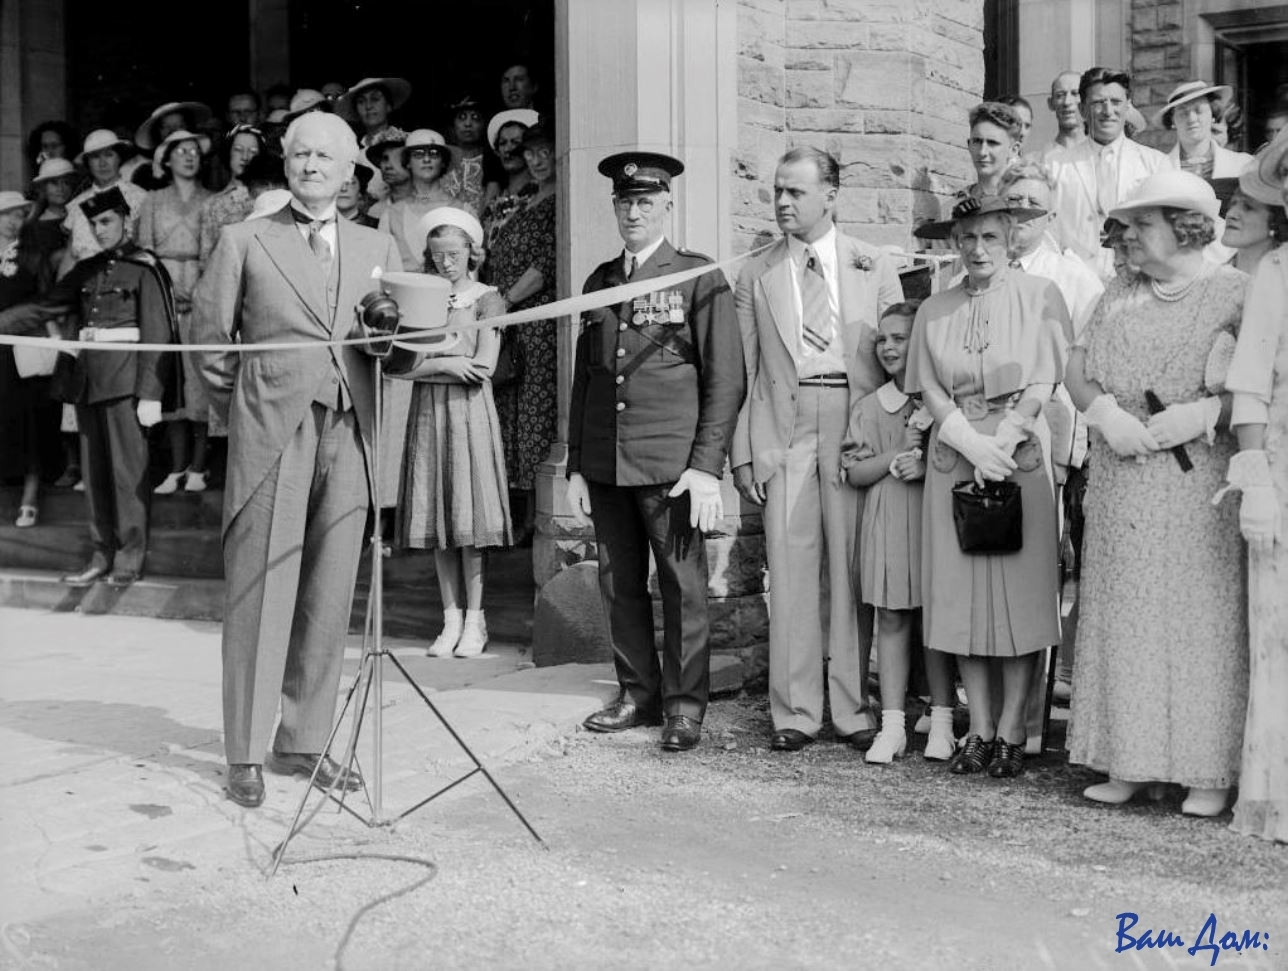 Lieutenant-Governor_Dr._Bruce_opens_Casa_Loma_to_the_public_(Fonds_1244,_Item_4121)